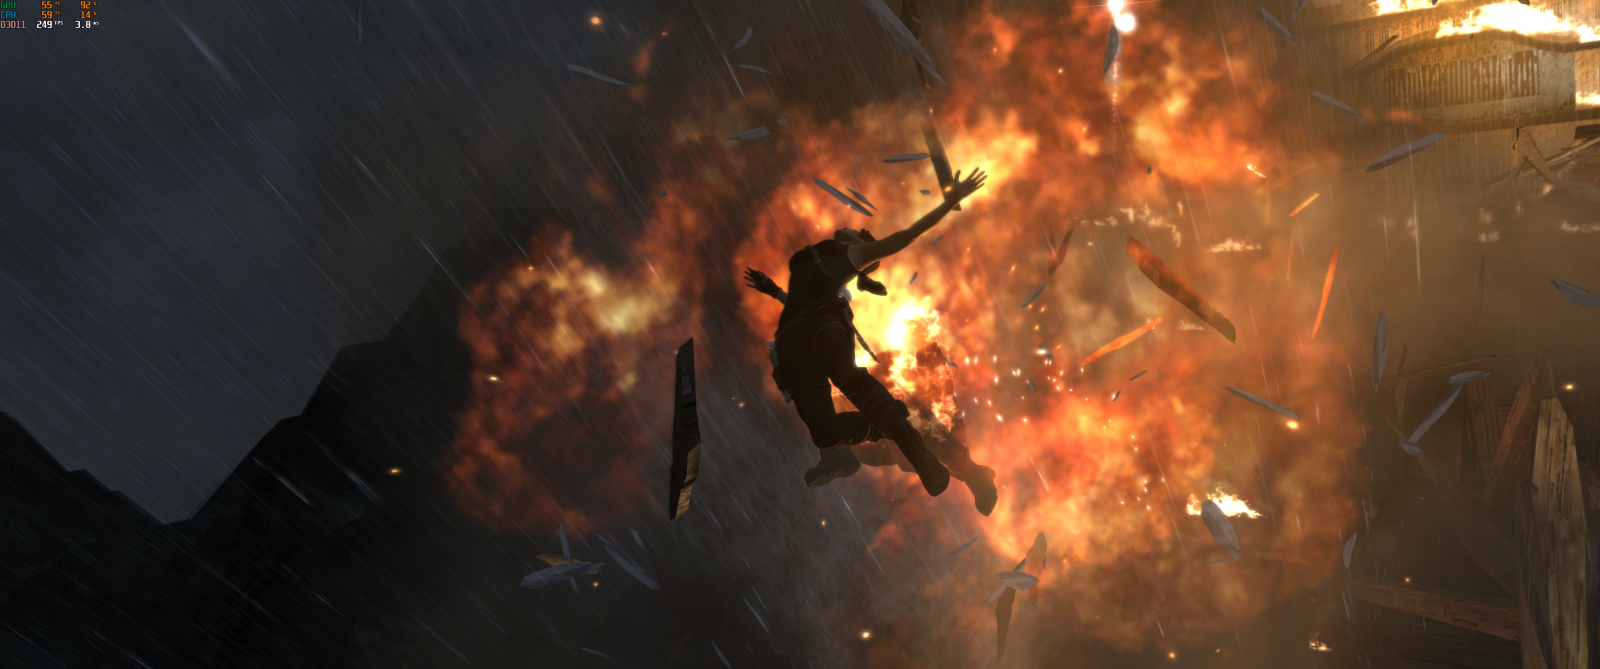 TombRaider_2021_06_26_17_36_56_681.png